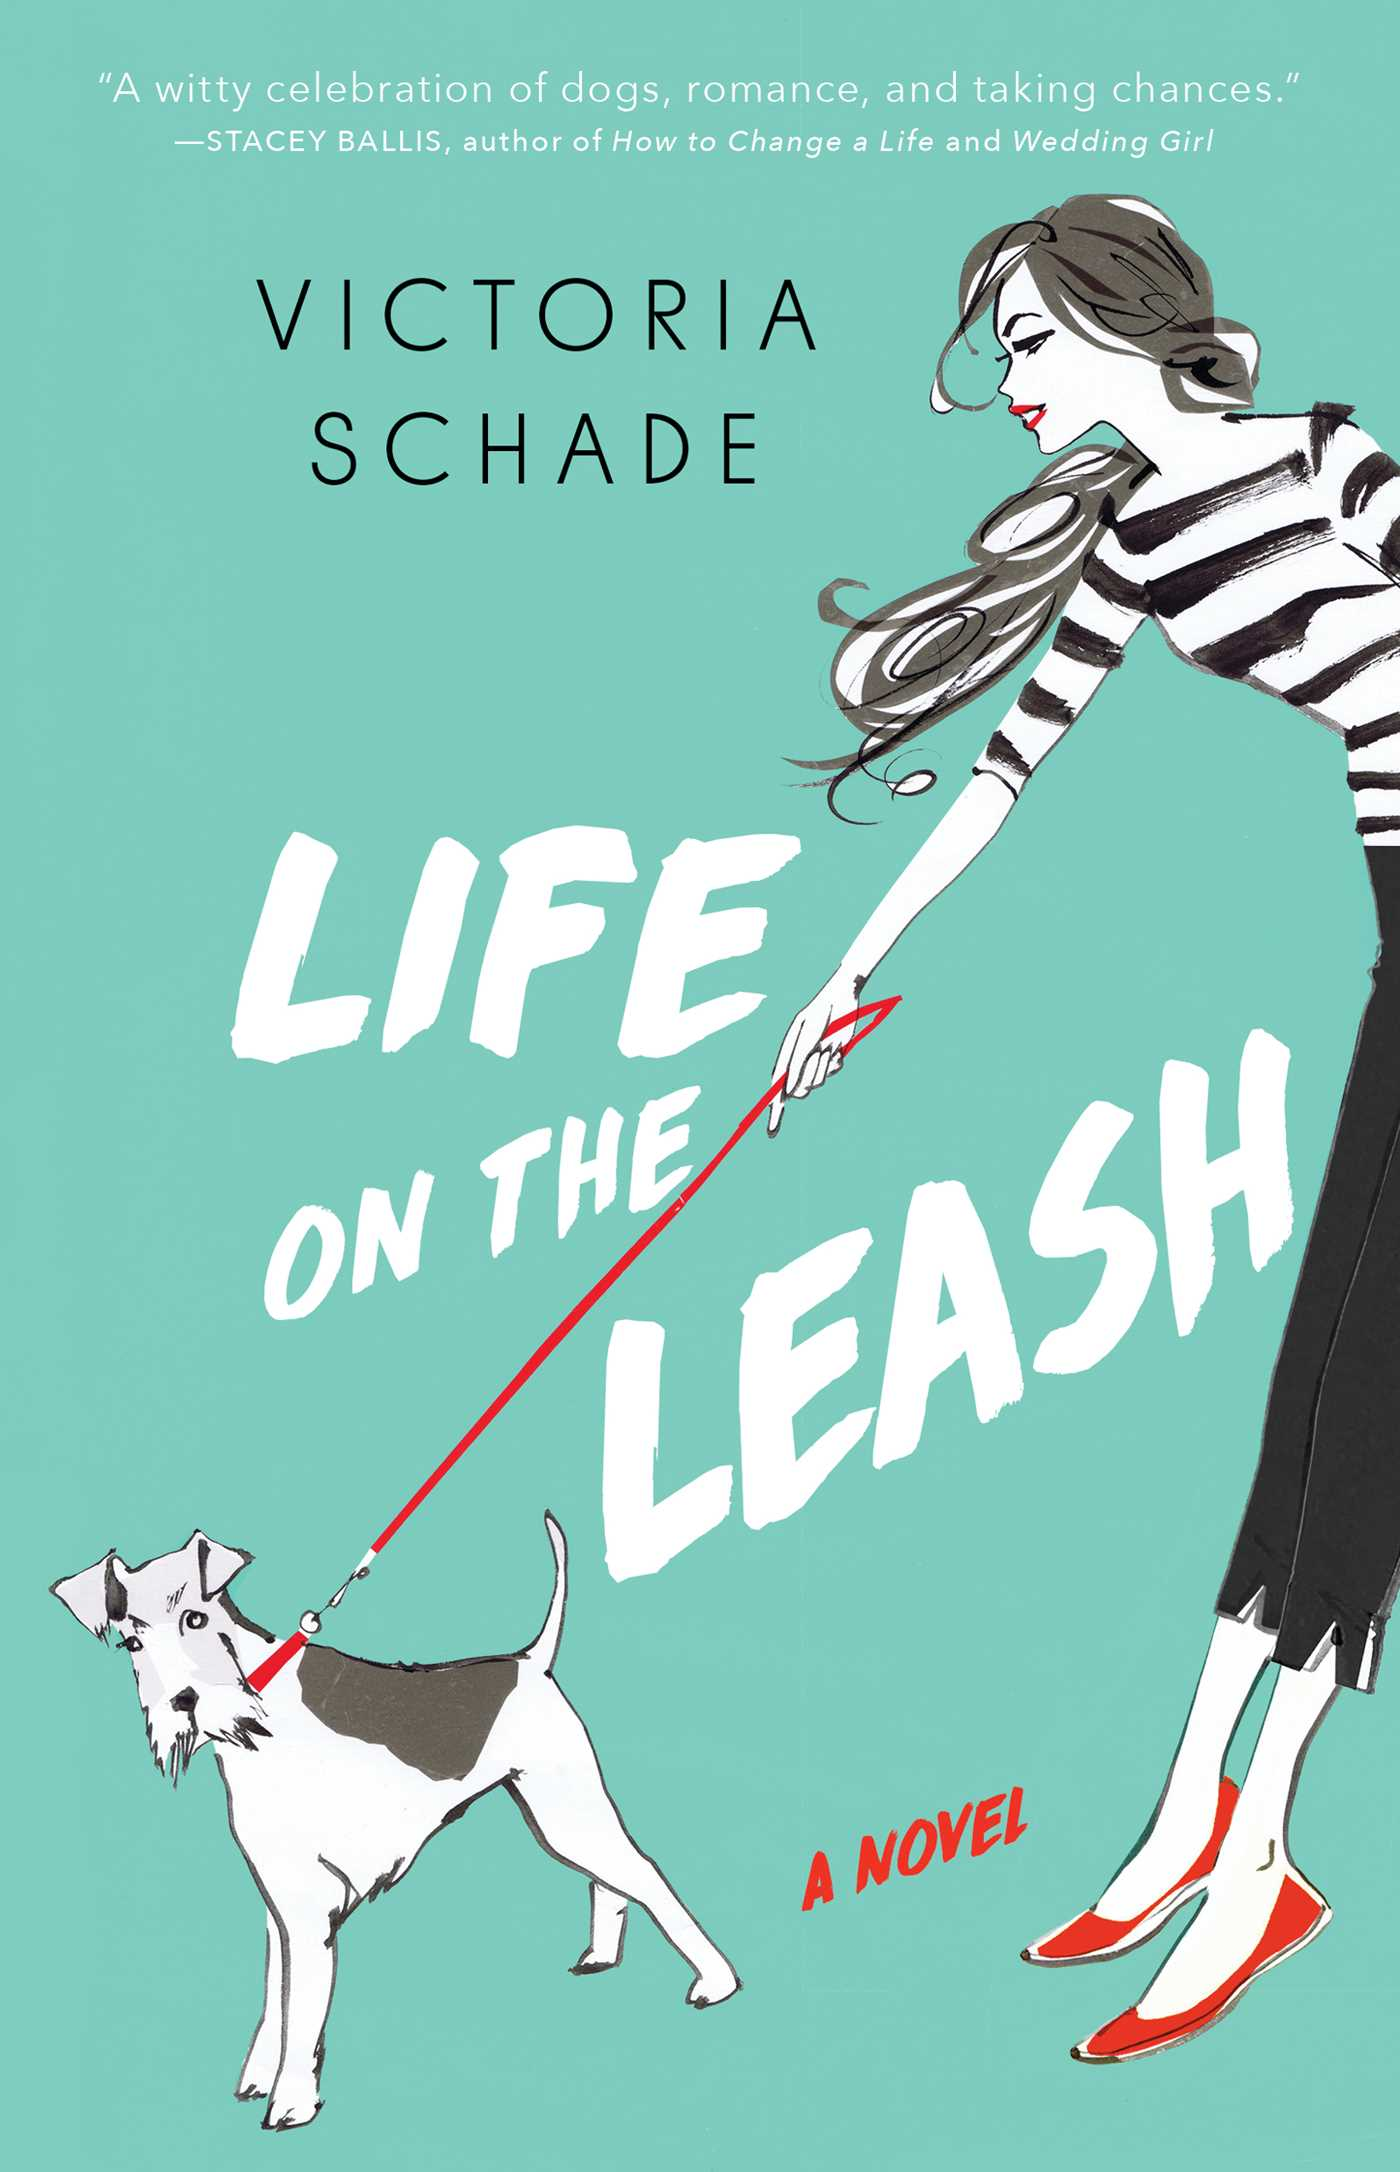 Life on the leash 9781501191671 hr